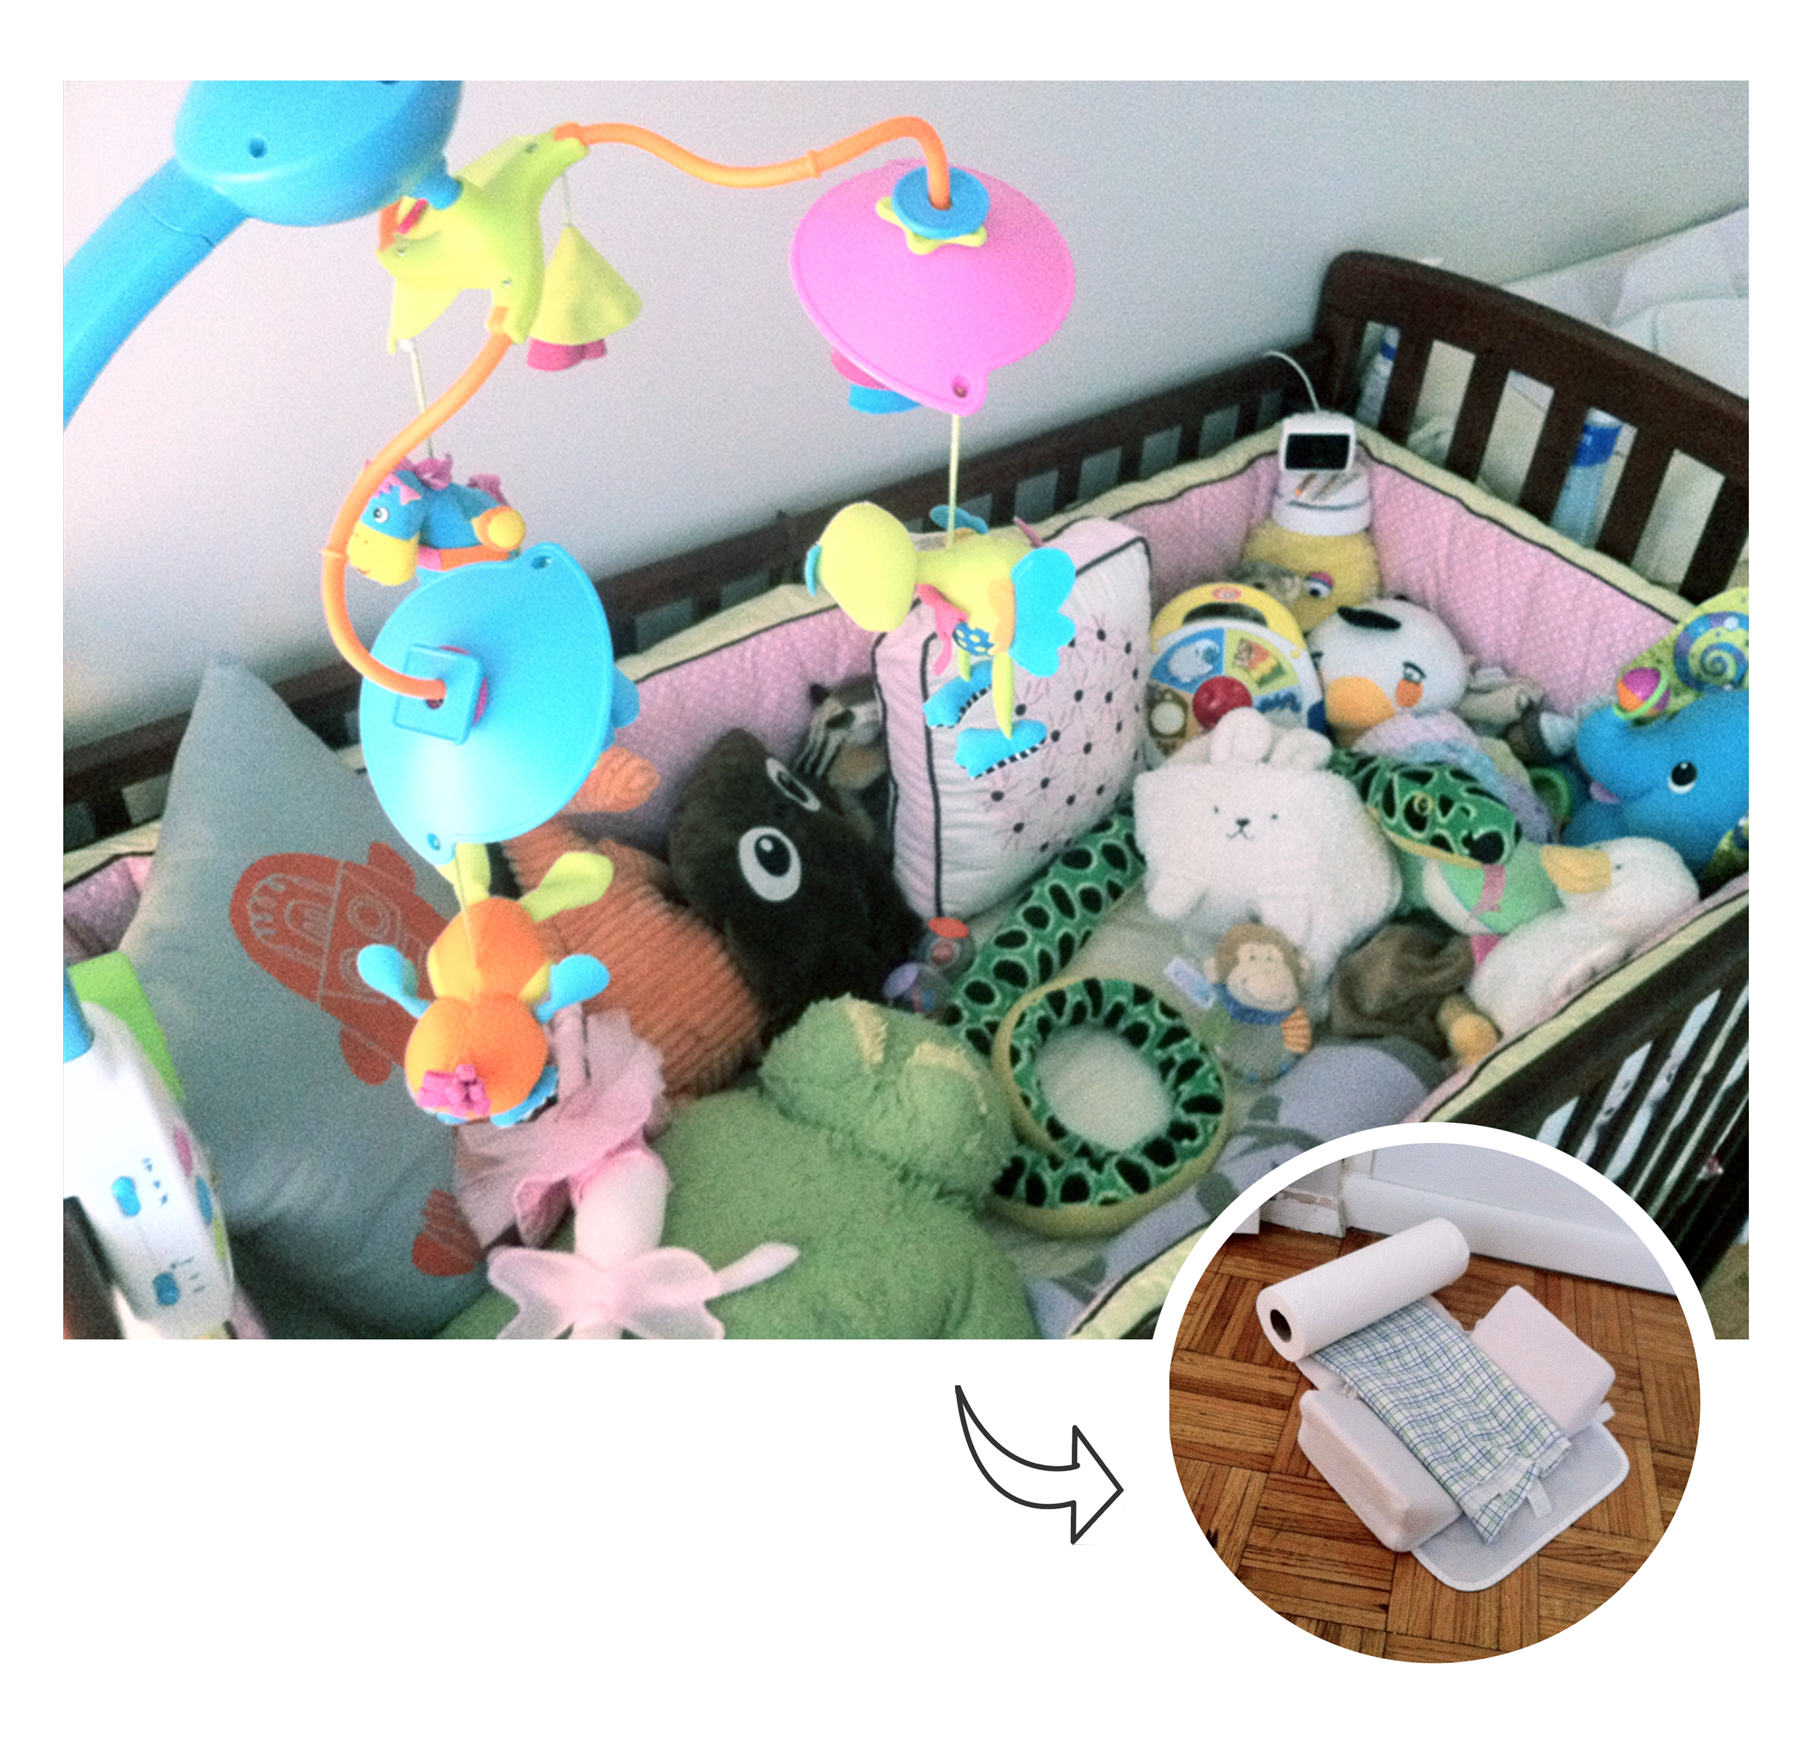 Crib pillows babies - Crib Overflowing With Stuffed Animals Puffy Pillows And Assorted Gadgets Forces Baby To Sleep On Floor